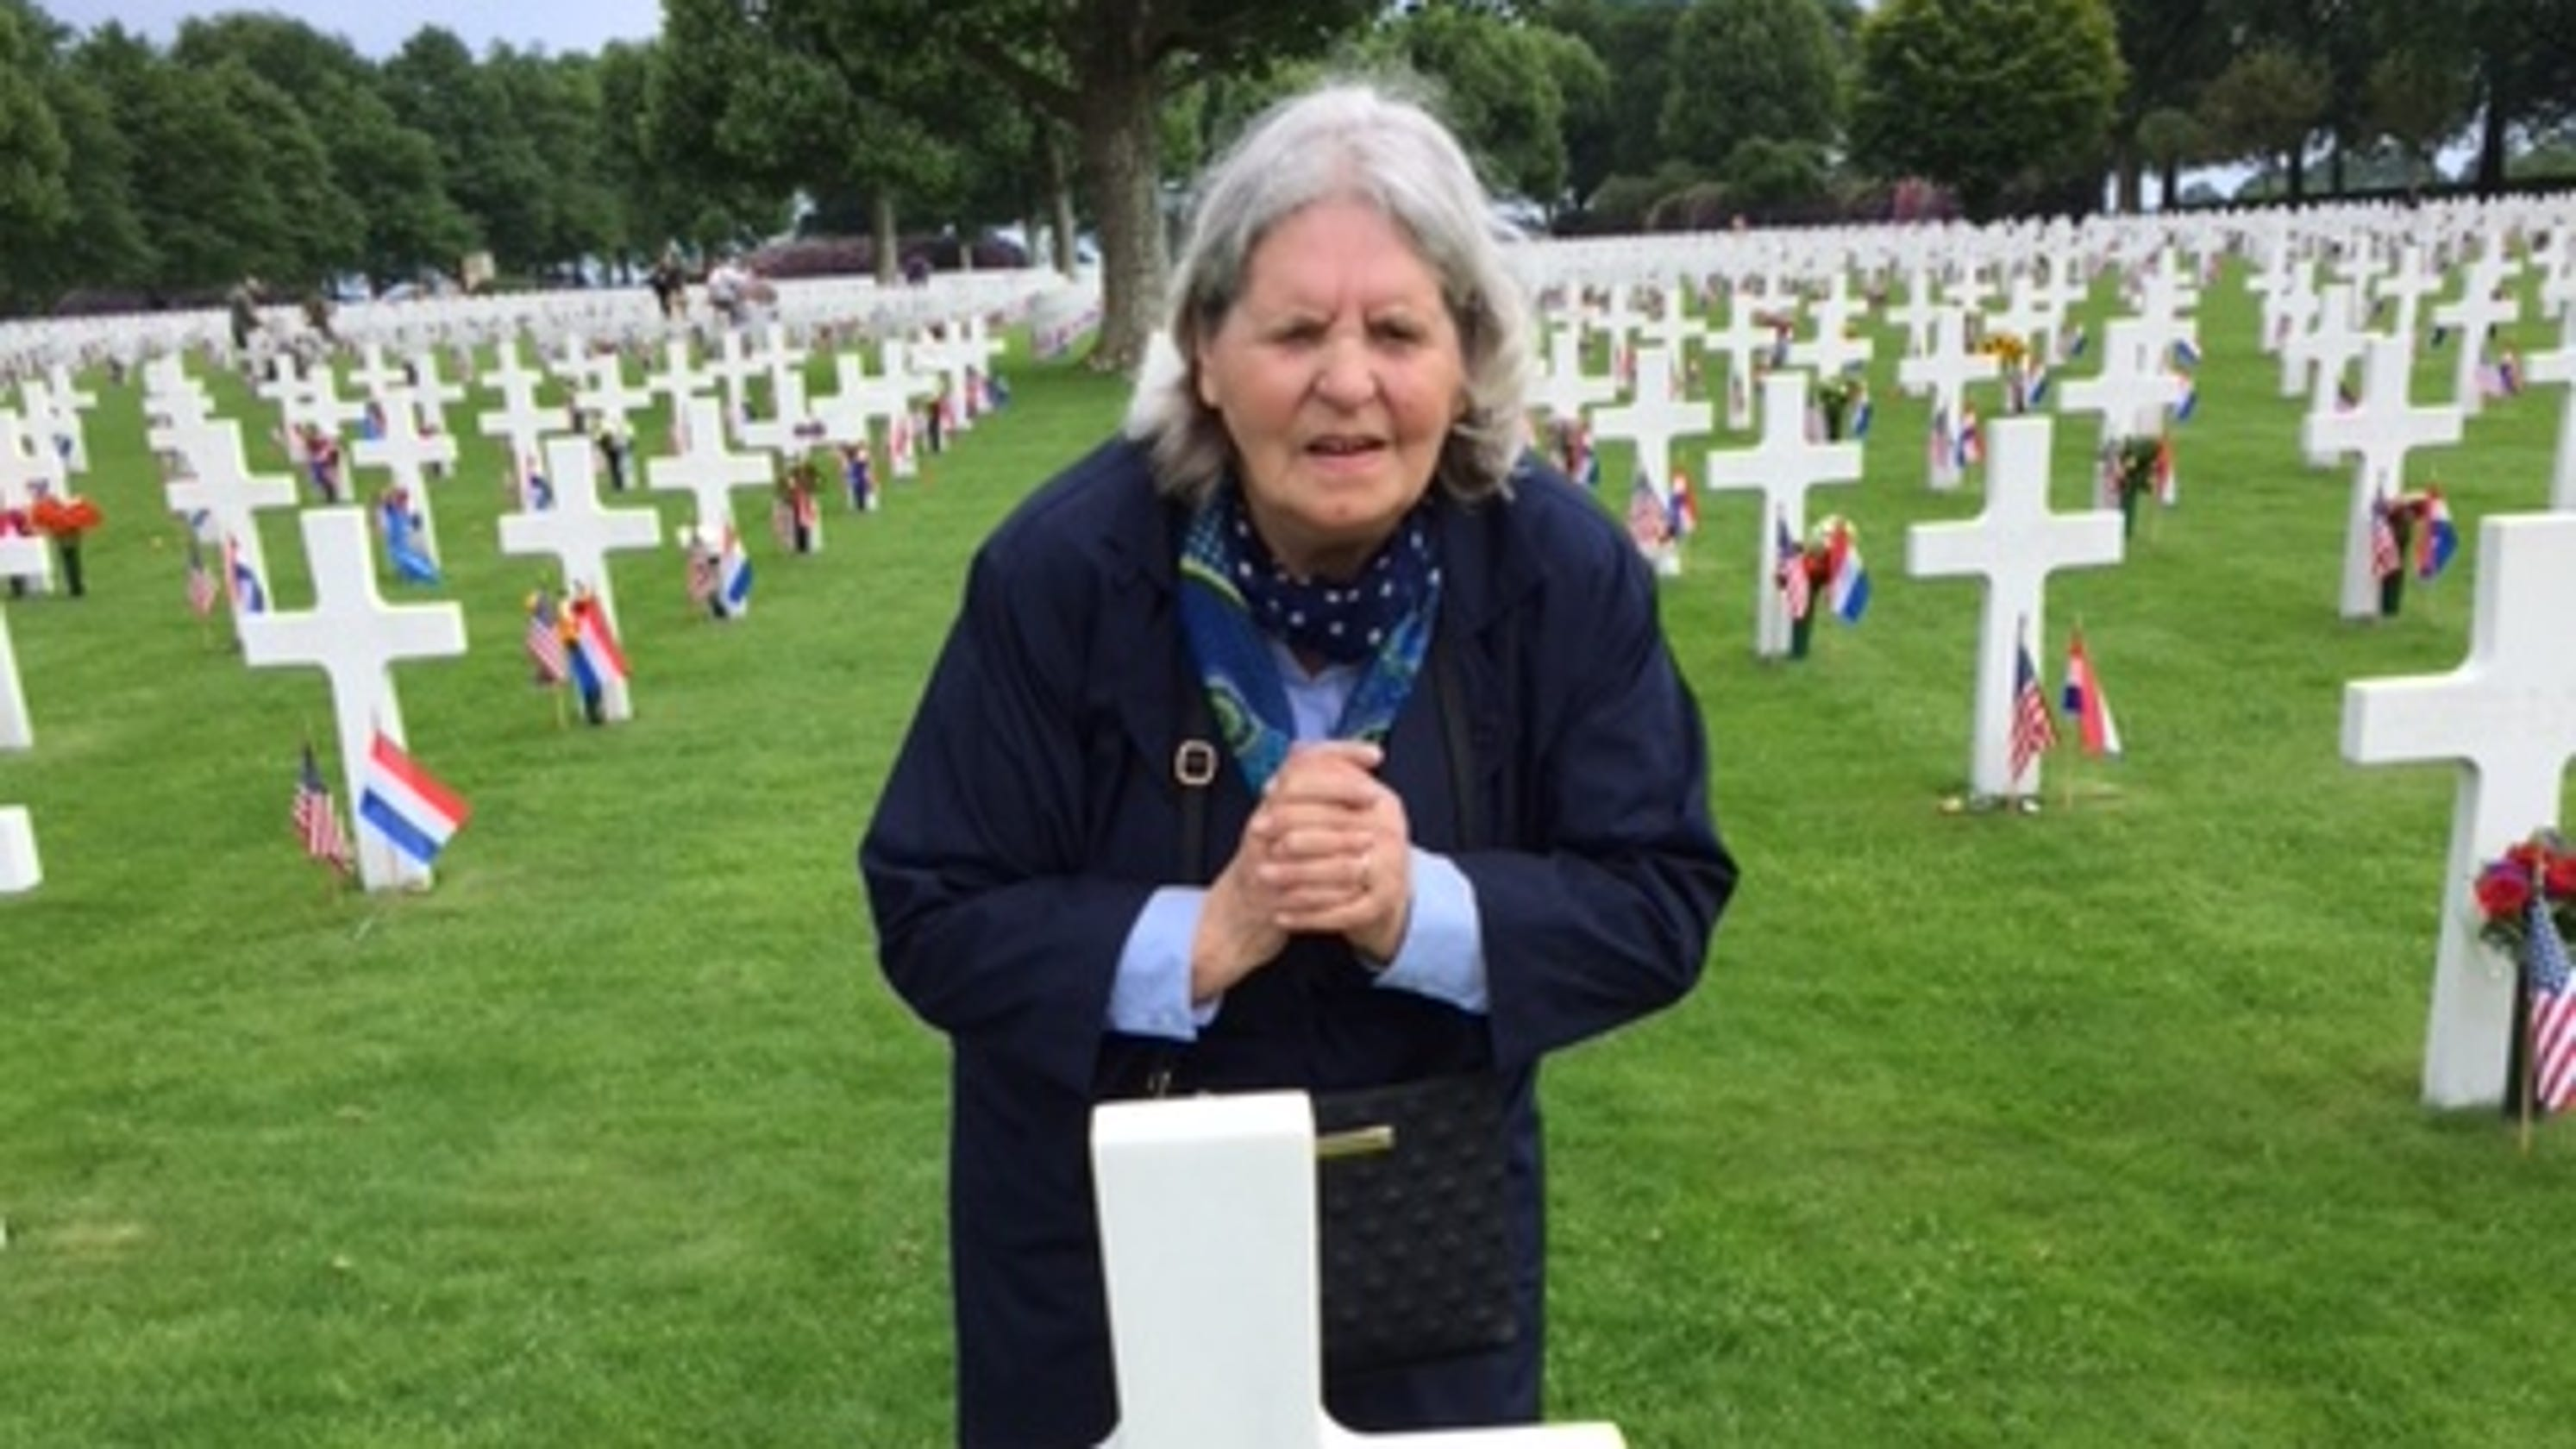 Memorial Day Wwii Soldiers Grave Tended To By Stranger For